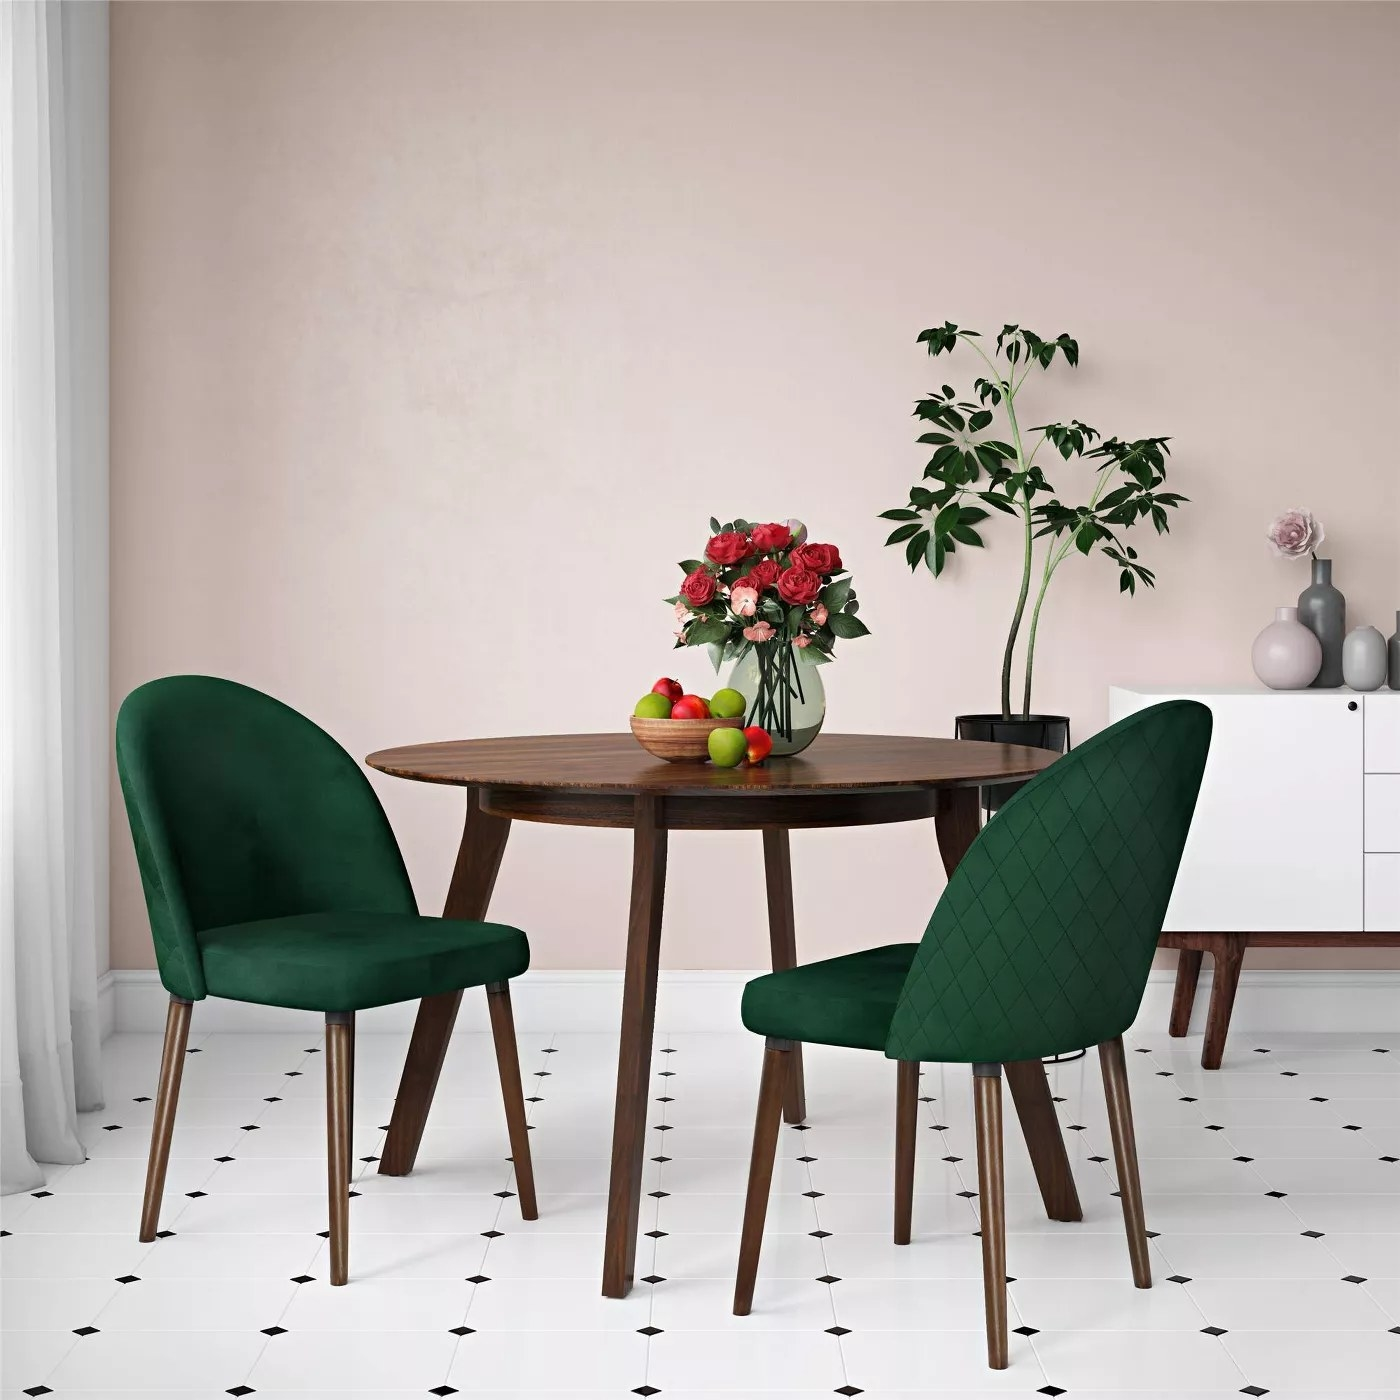 The two chairs in green placed by a dining table